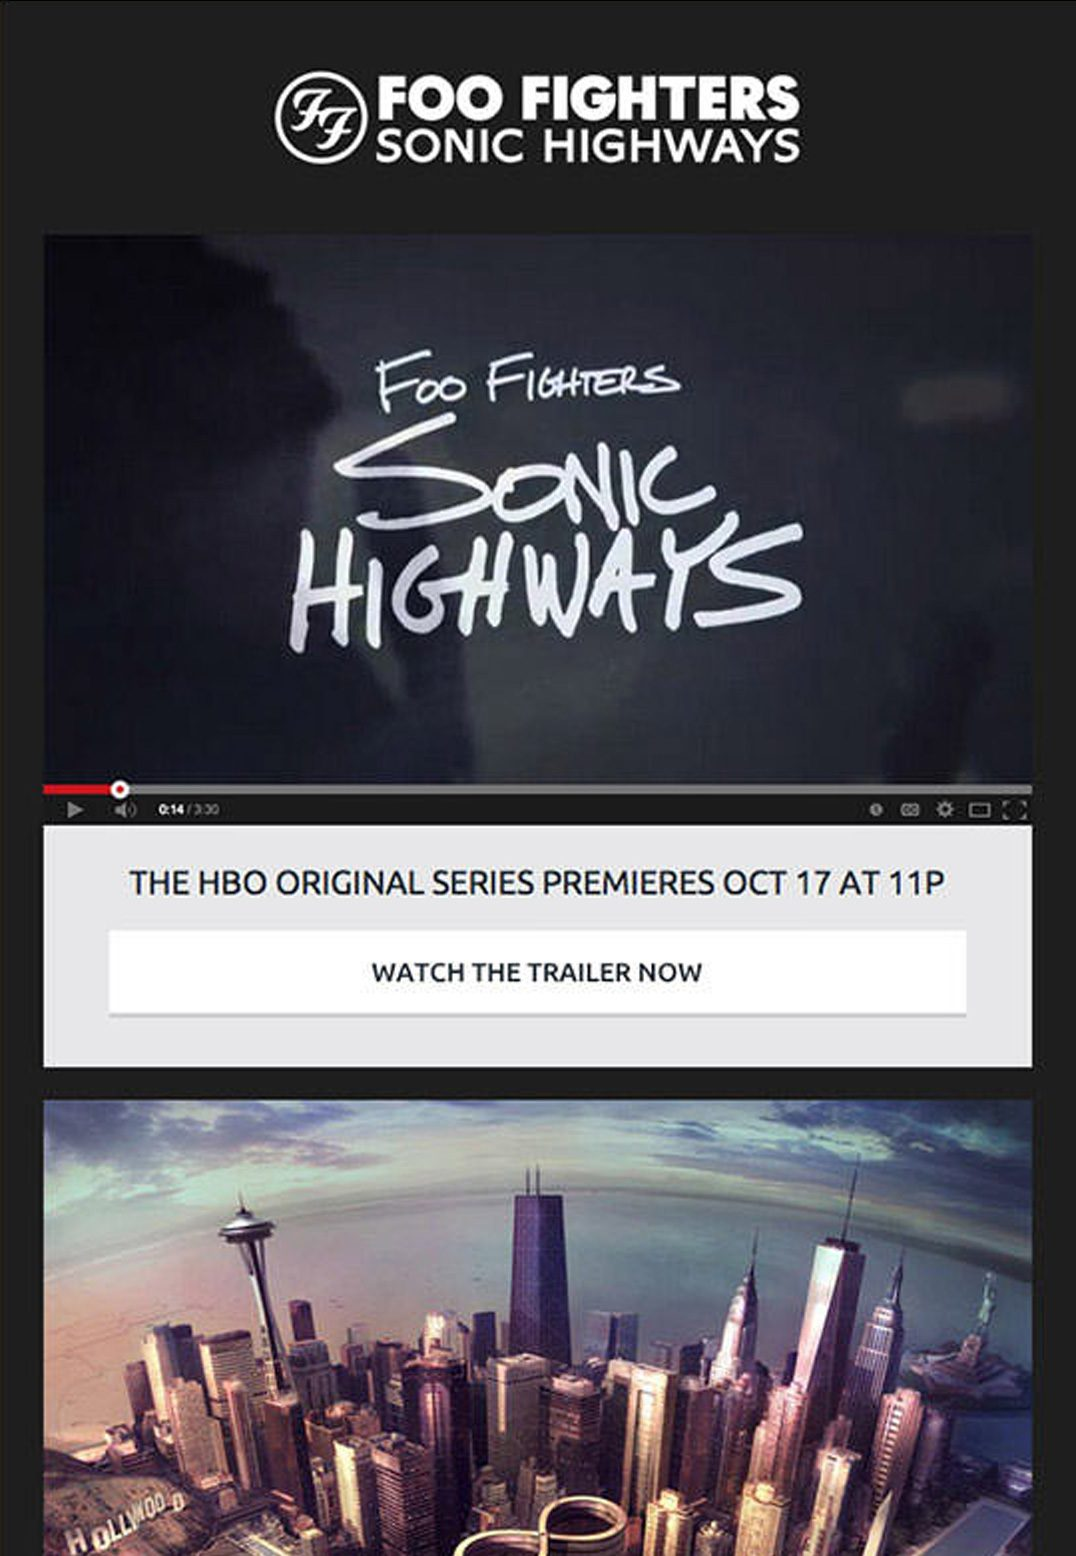 Foo Fighters is an American rock band with a thriving following. When they wanted to get the word out about their new album and HBO special, 'Sonic Highways', they turned to video email marketing.